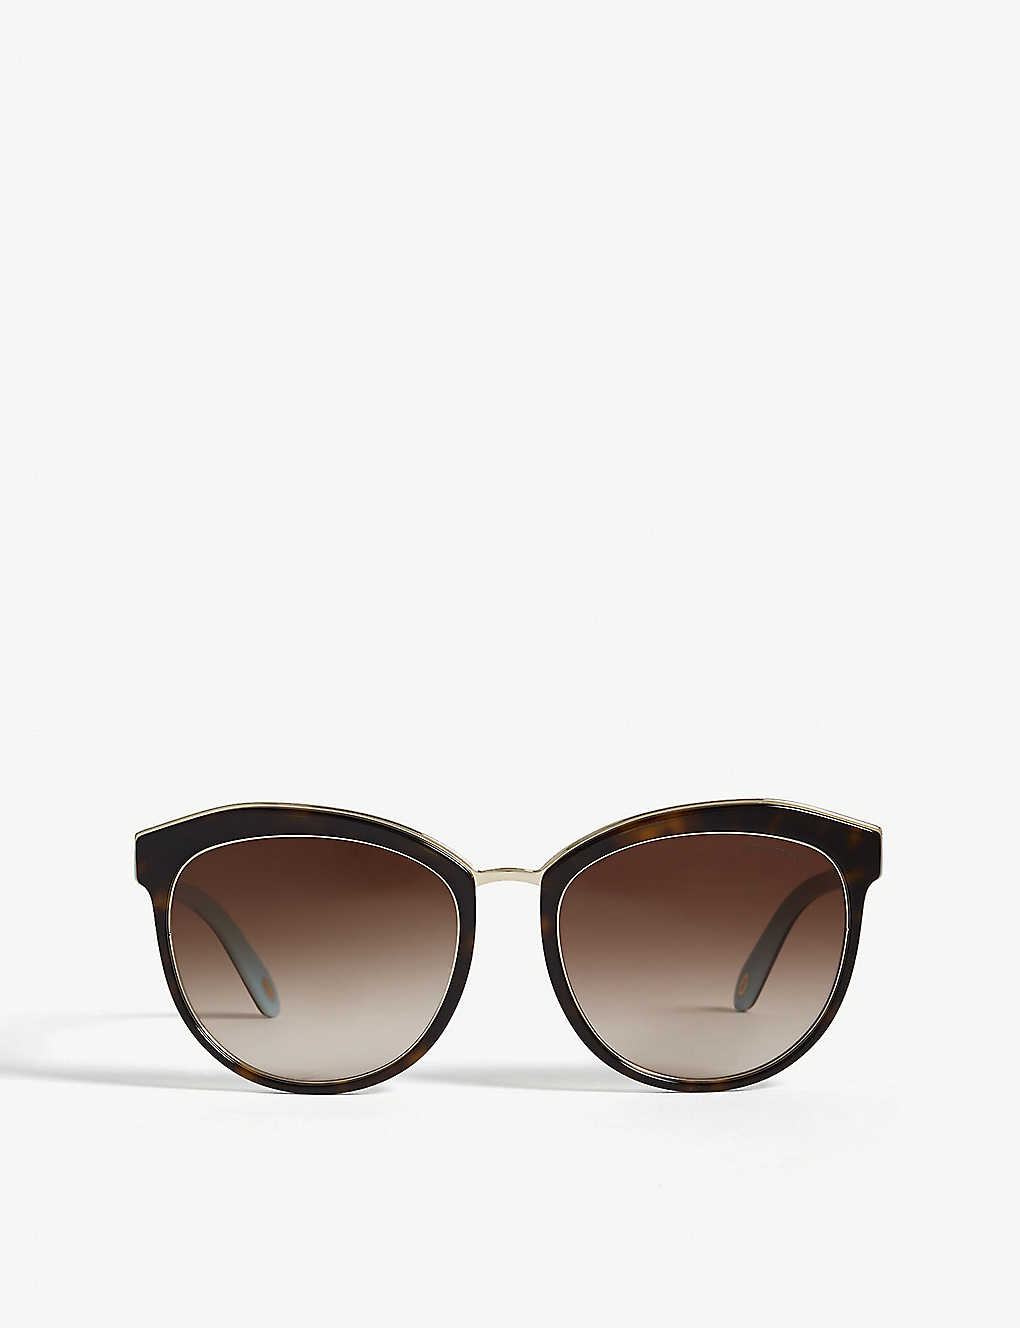 52110d7bc878 TIFFANY & CO - Tf4146 Phantos Havana sunglasses | Selfridges.com